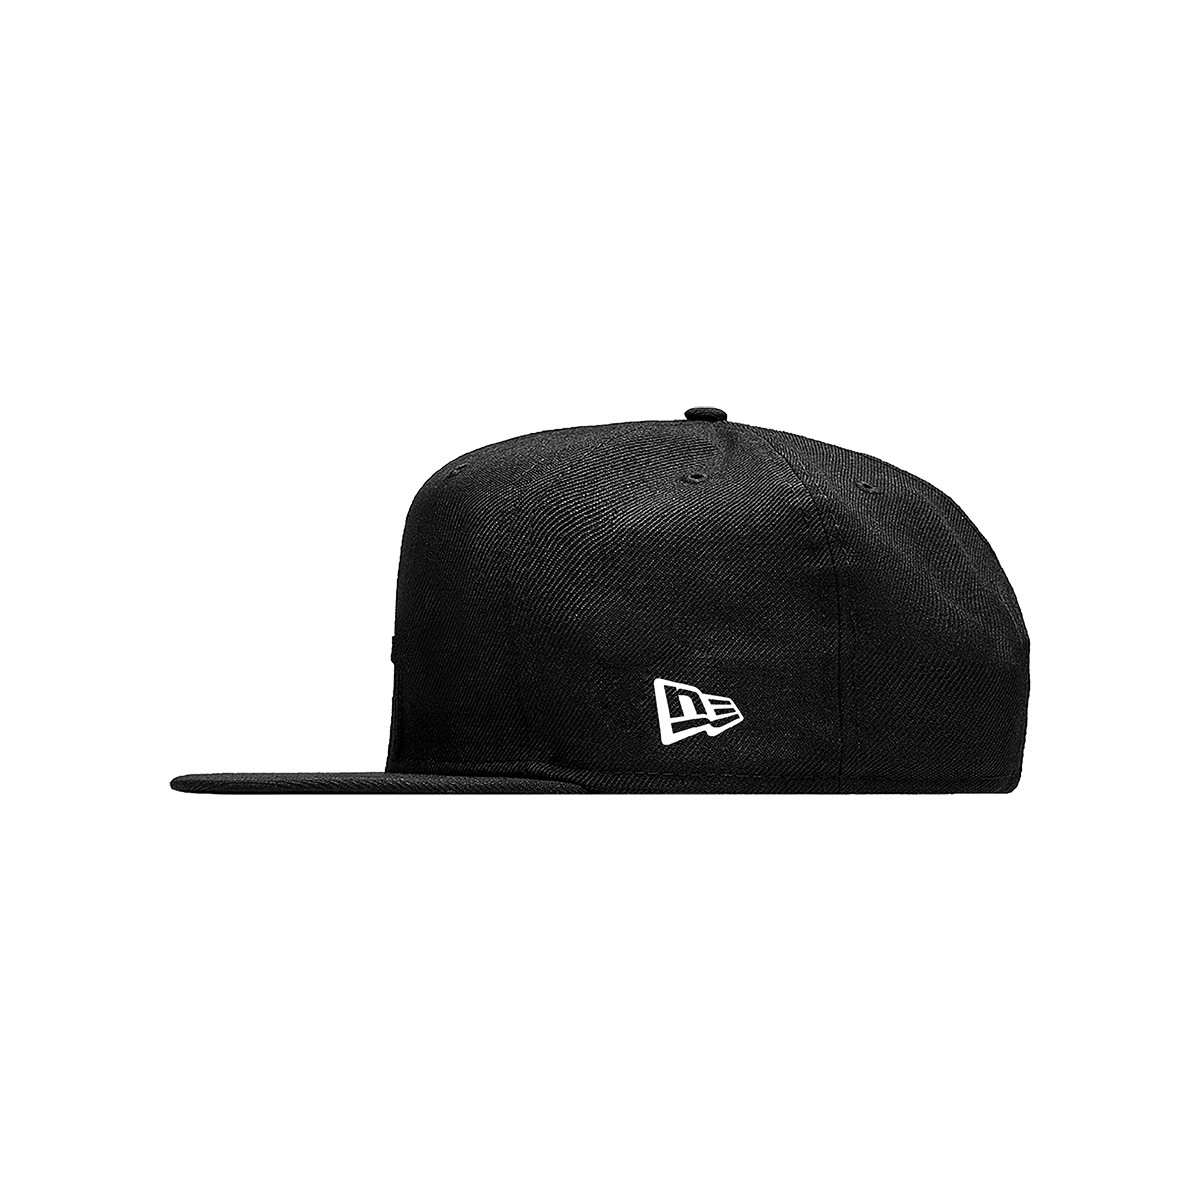 Loud Records Limited Edition New Era Snapback Hat